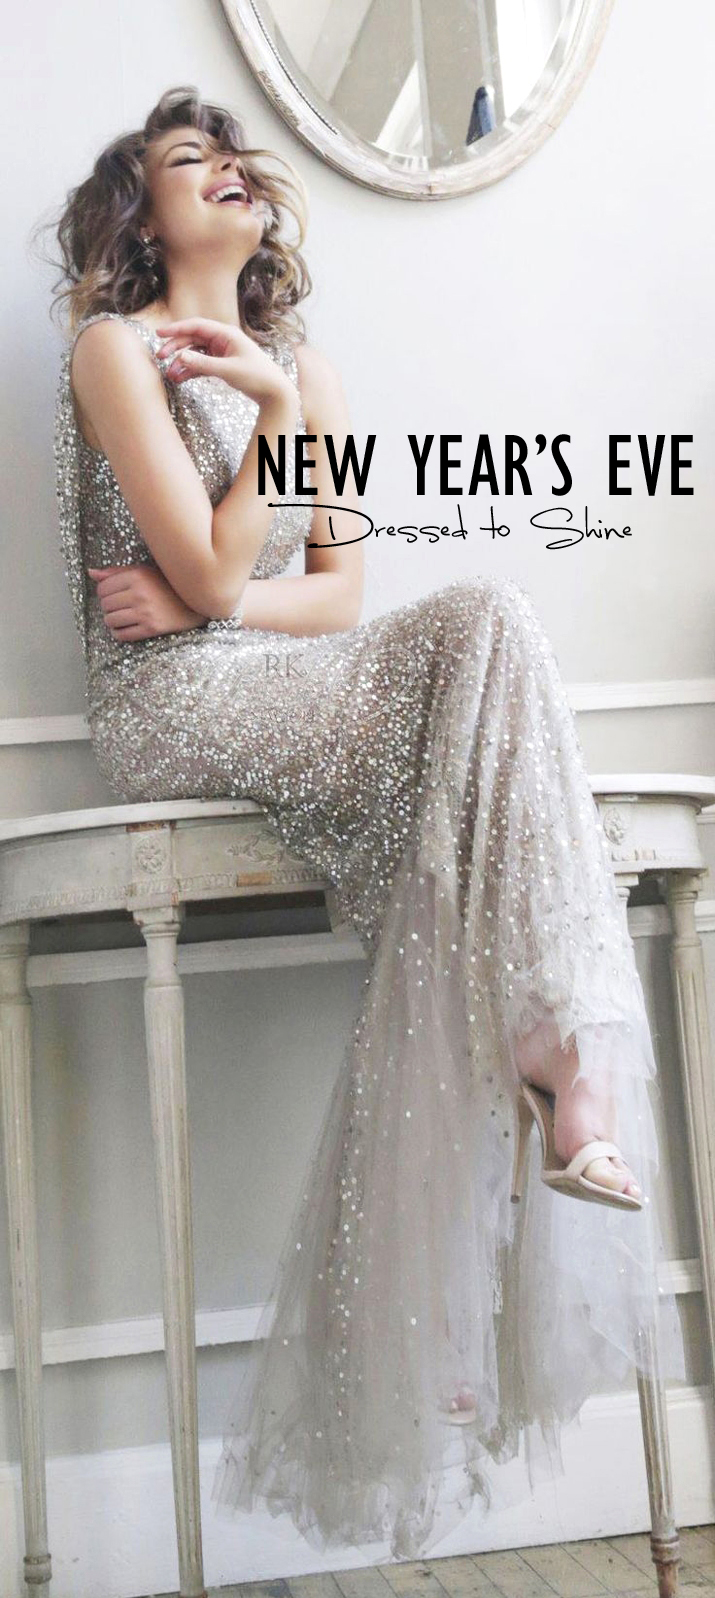 New-Years-Eve-dresses (5)1